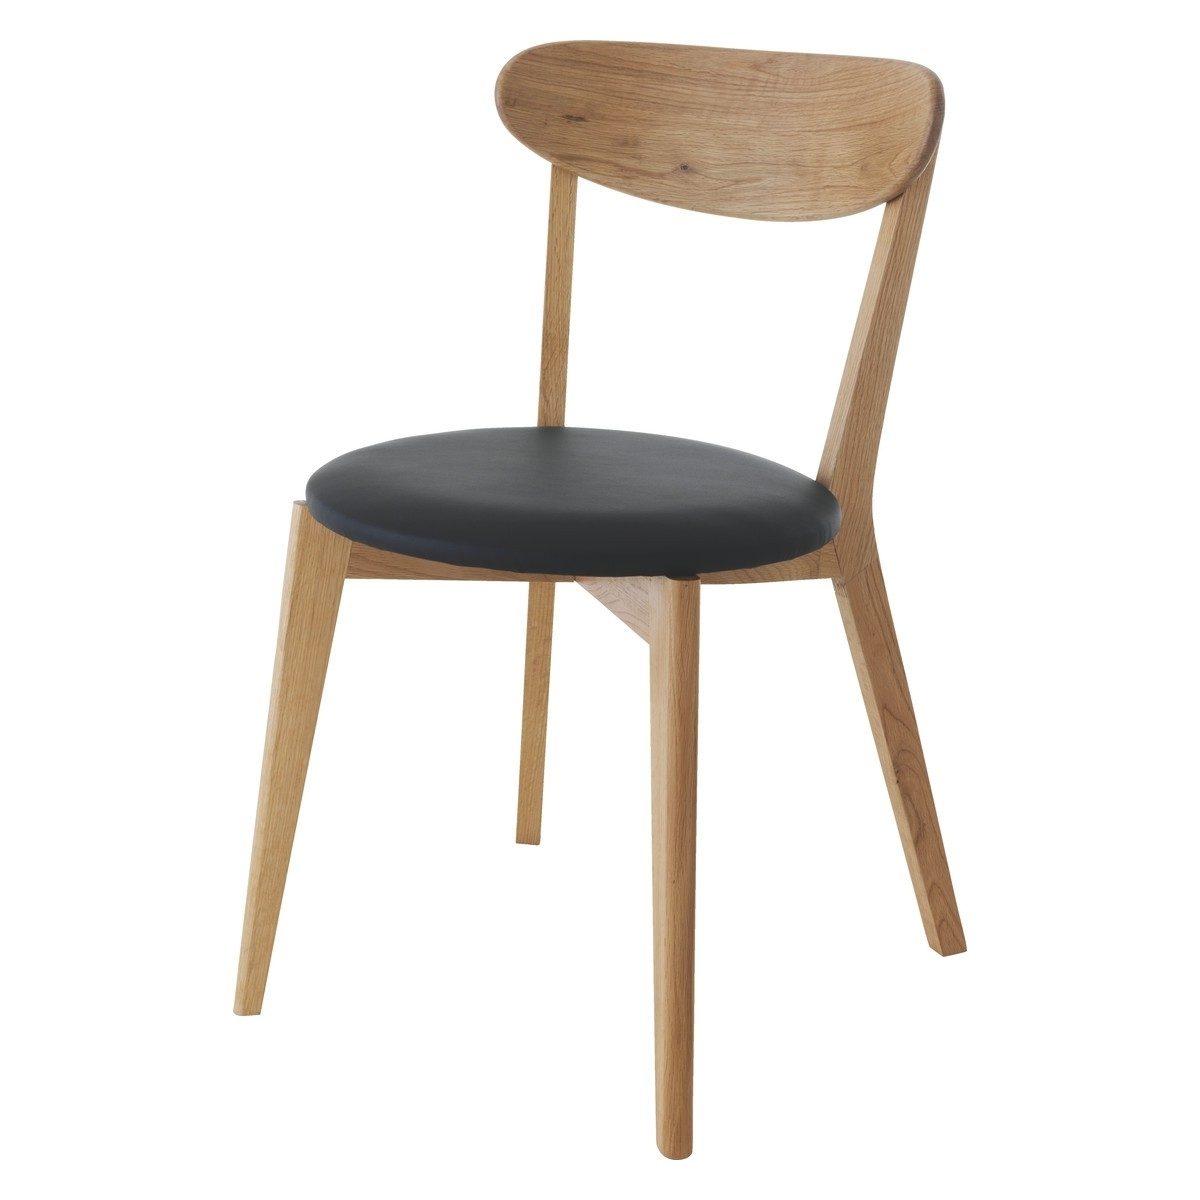 Buy Now At Habitat Uk Pertaining To Oak Dining Chairs (View 8 of 25)